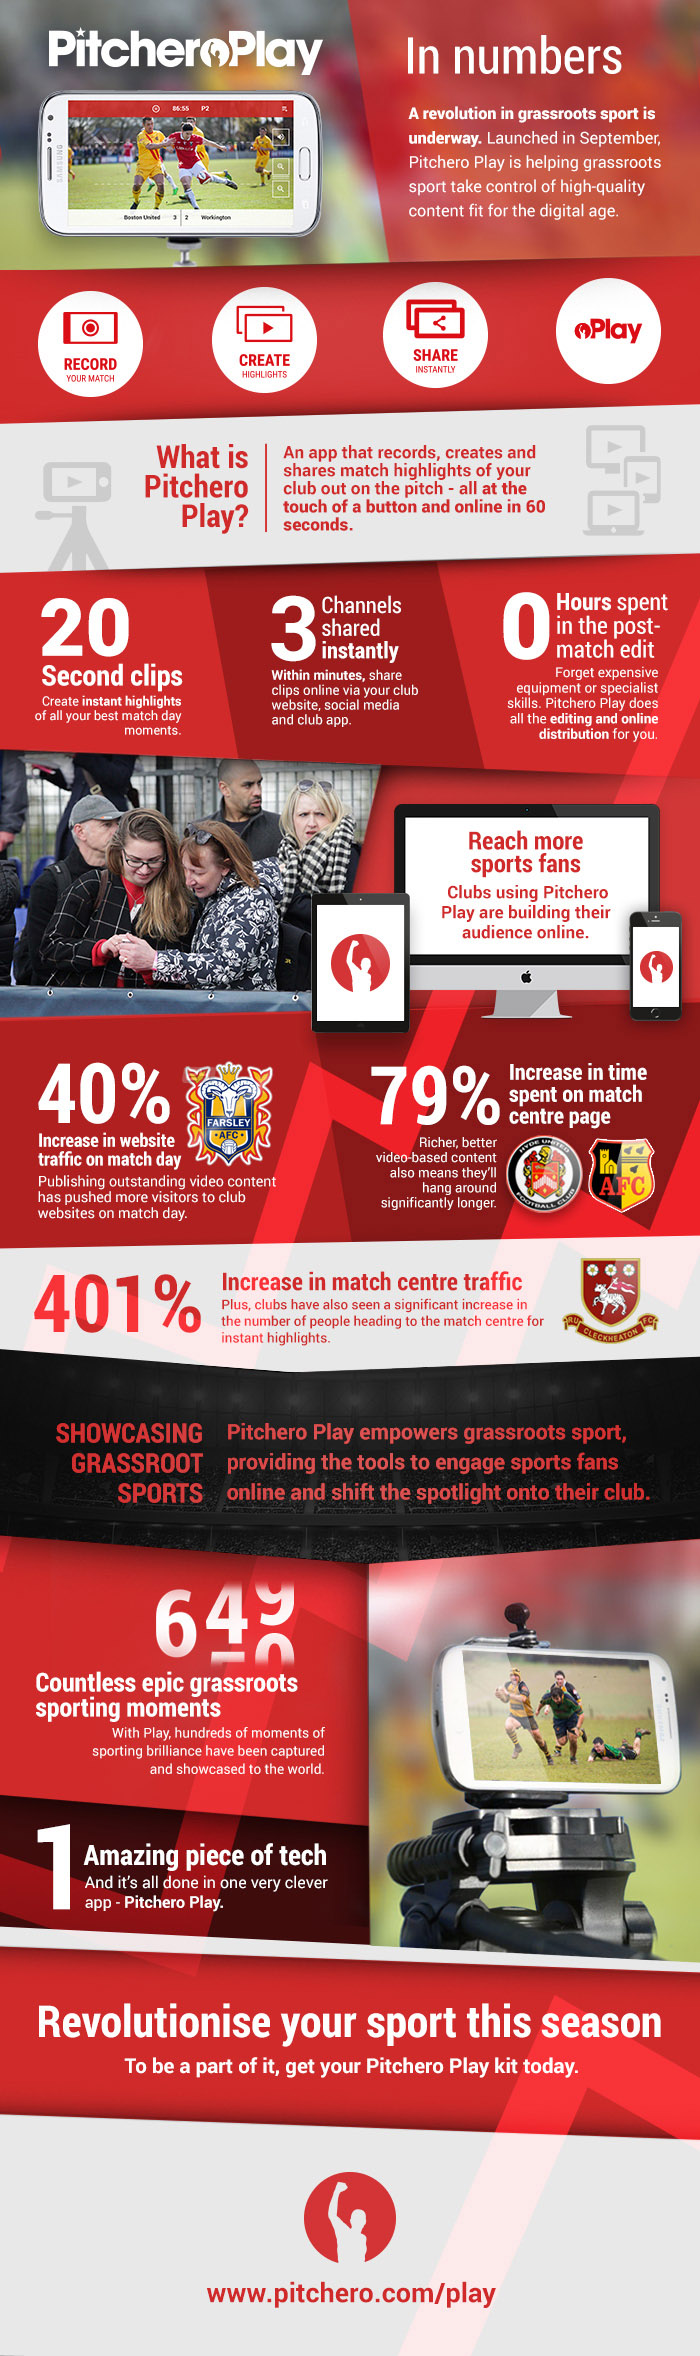 Pitchero Play in numbers infographic